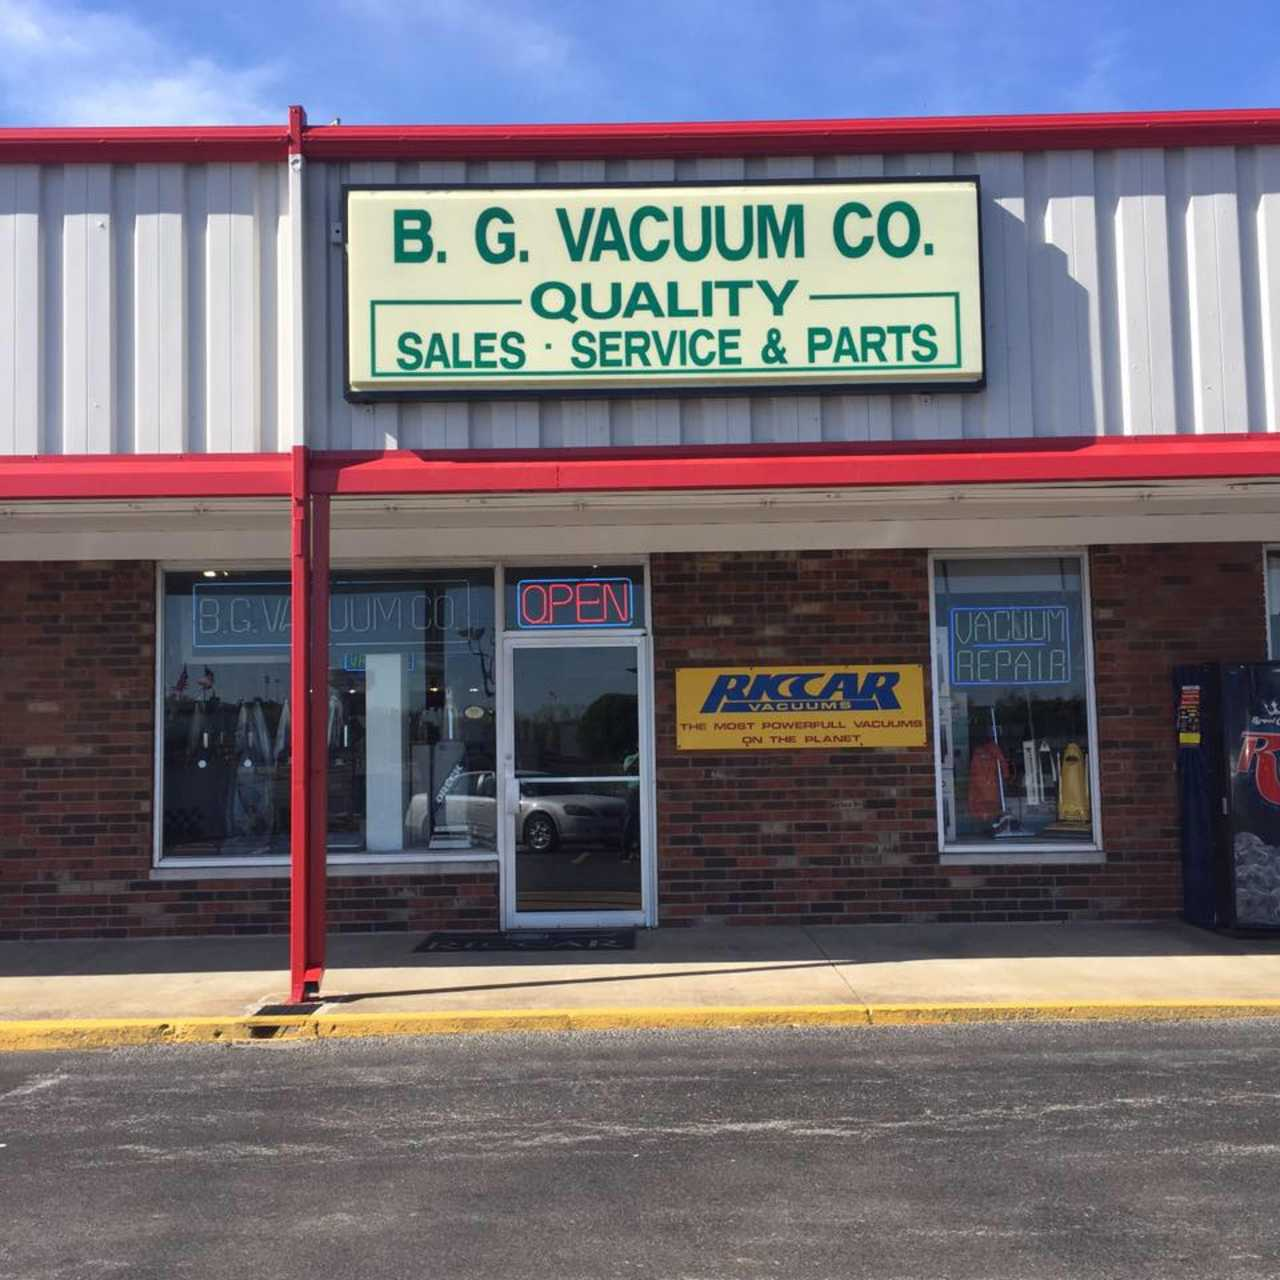 B G Vacuum Cleaner Co Inc - Shopping - Appliance Stores in Bowling Green KY